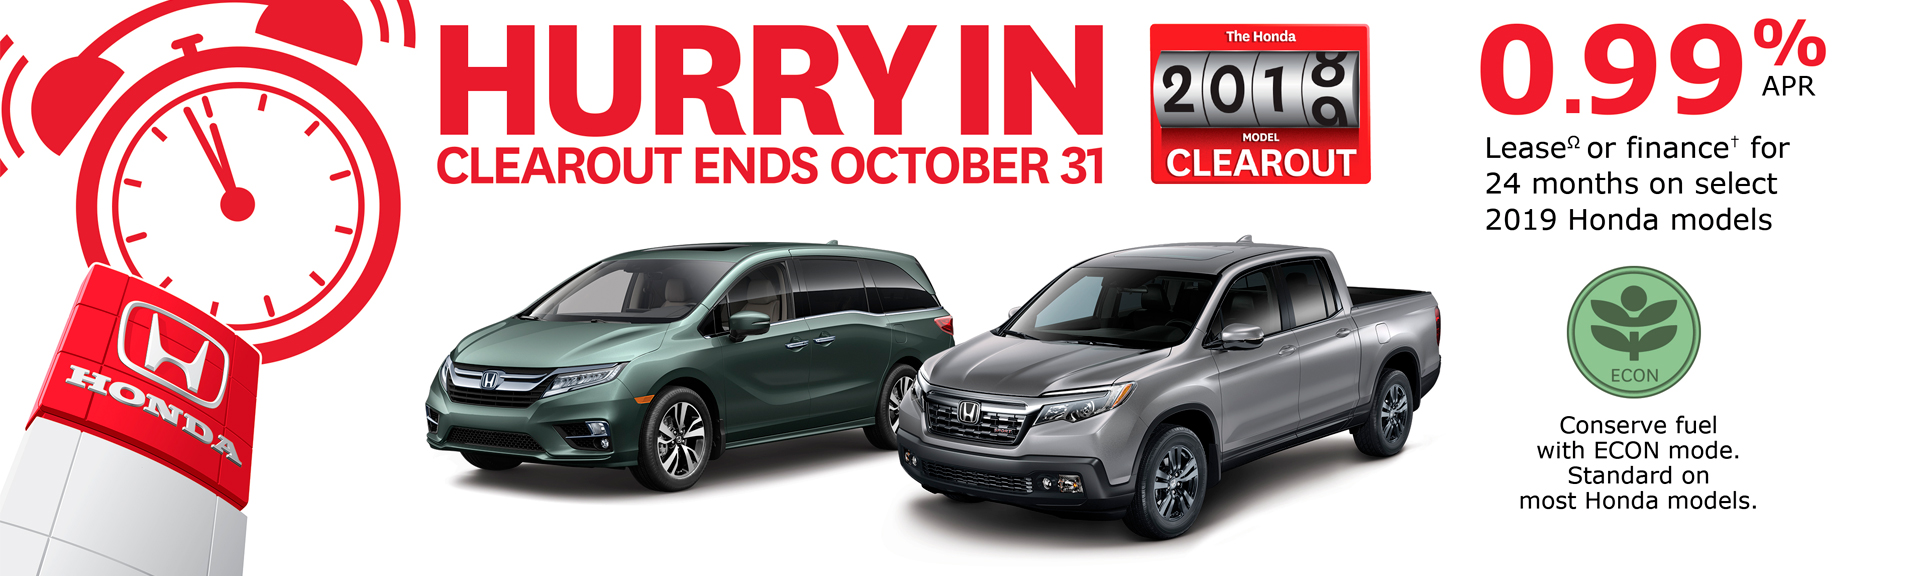 2018 Honda Clearout Rates